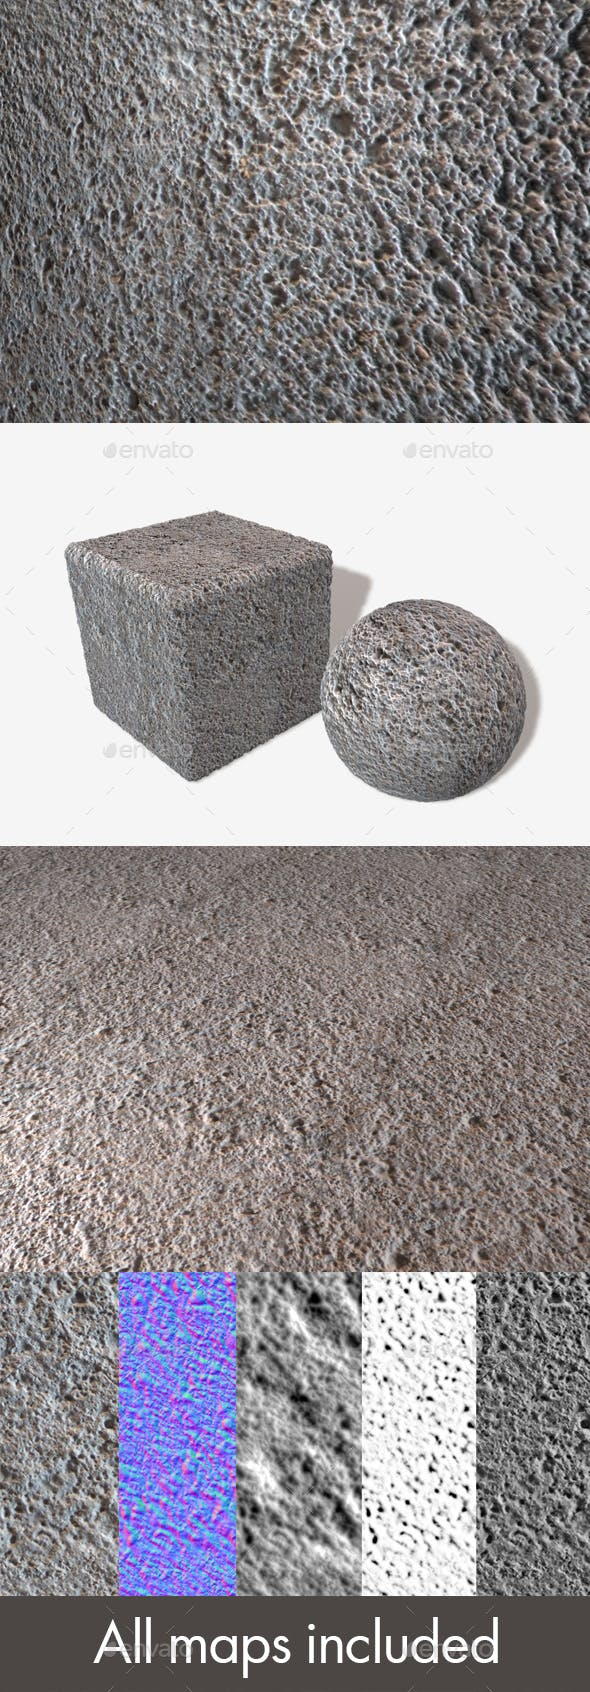 Textured Concrete Seamless Texture - 3DOcean Item for Sale